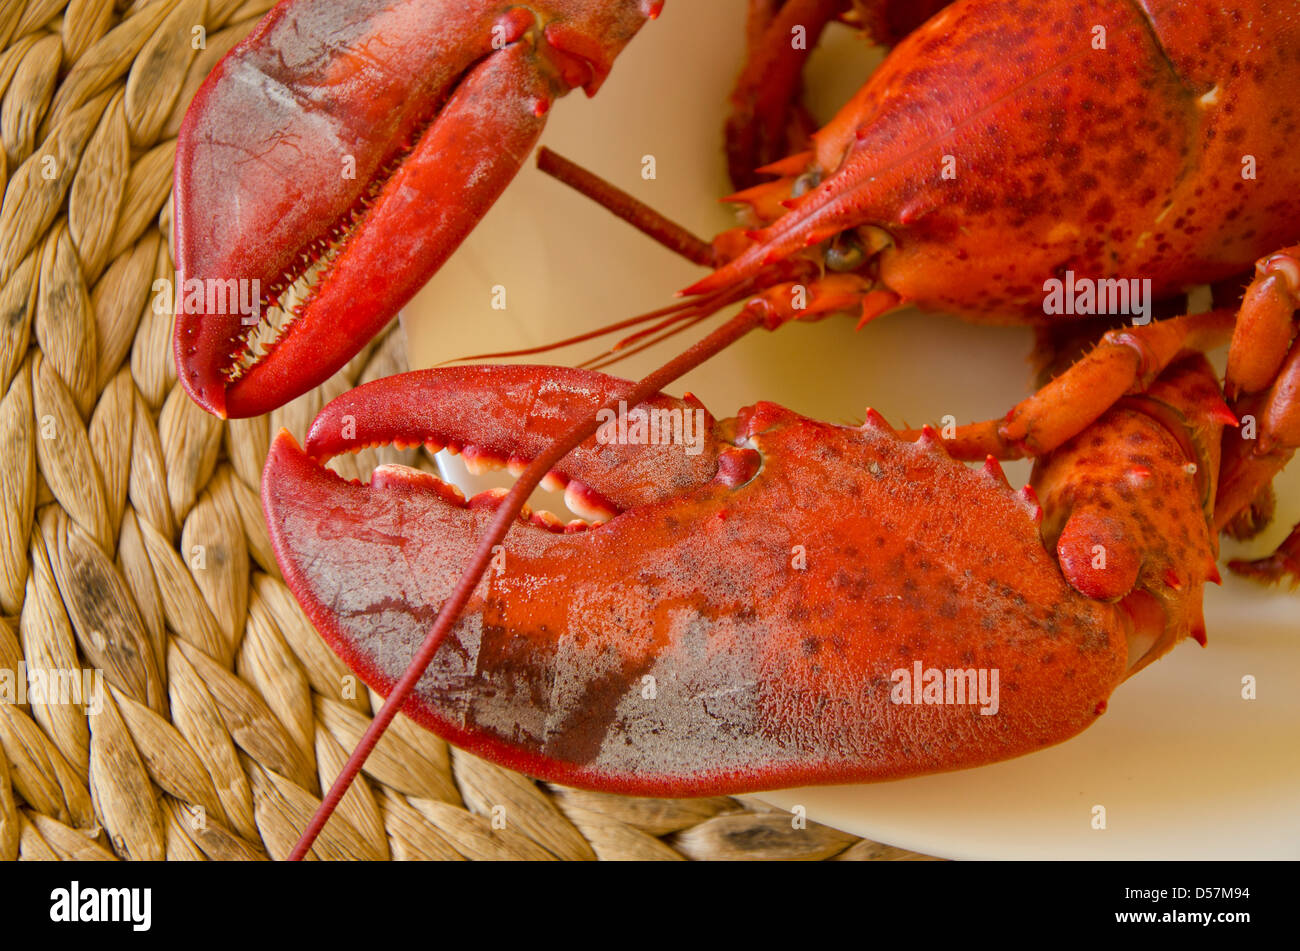 Lobster claws on a plate - Stock Image